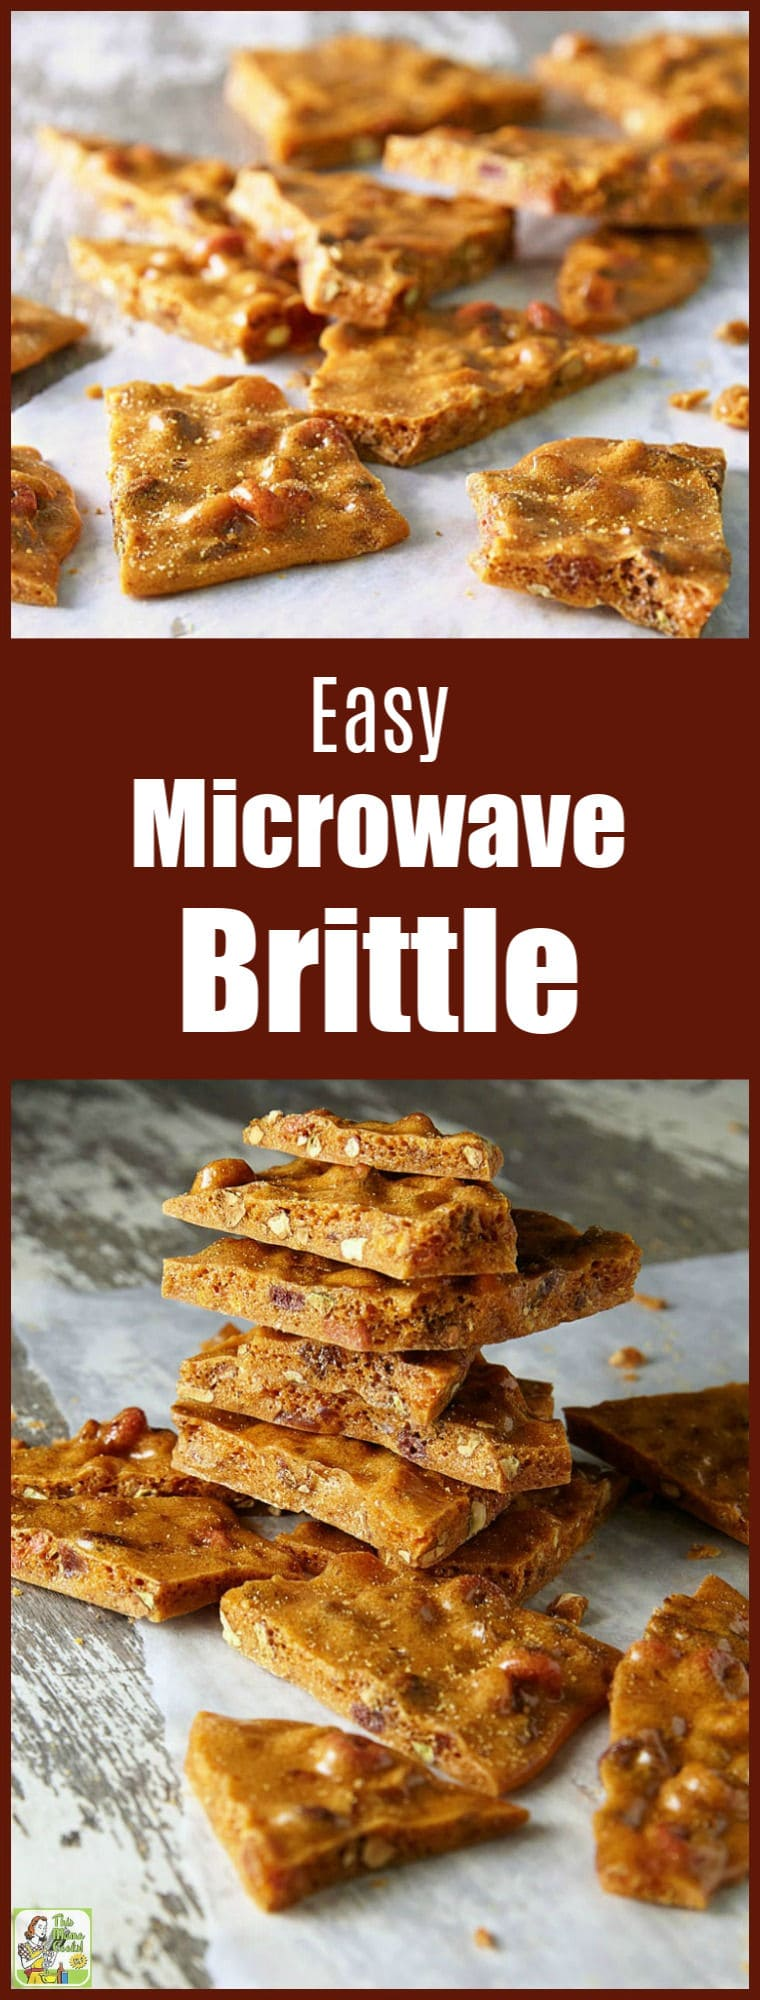 Easy Microwave Brittle Recipe